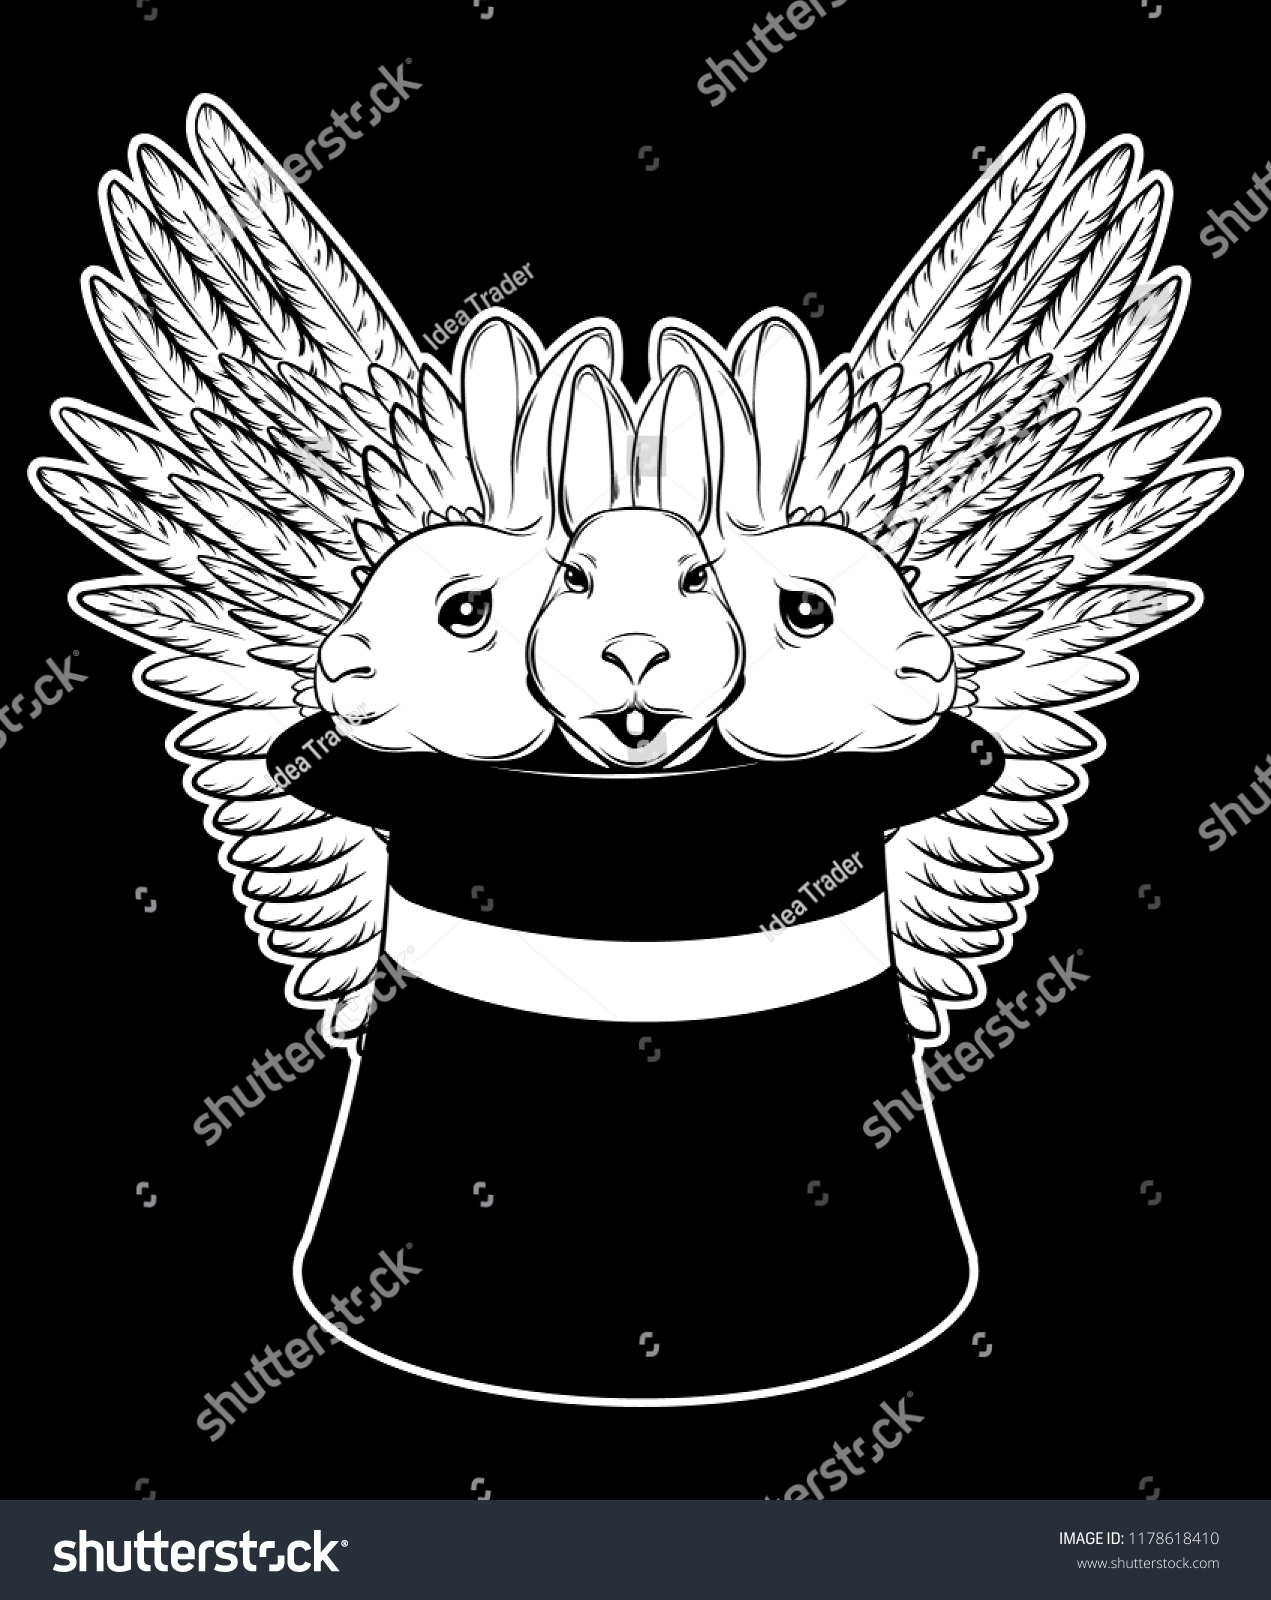 c064a079b582 Vector hand drawn illustration of three rabbits in top hat isolated.  Creative tattoo artwork. Template for card, poster, banner, print for t- shirt, pin, ...